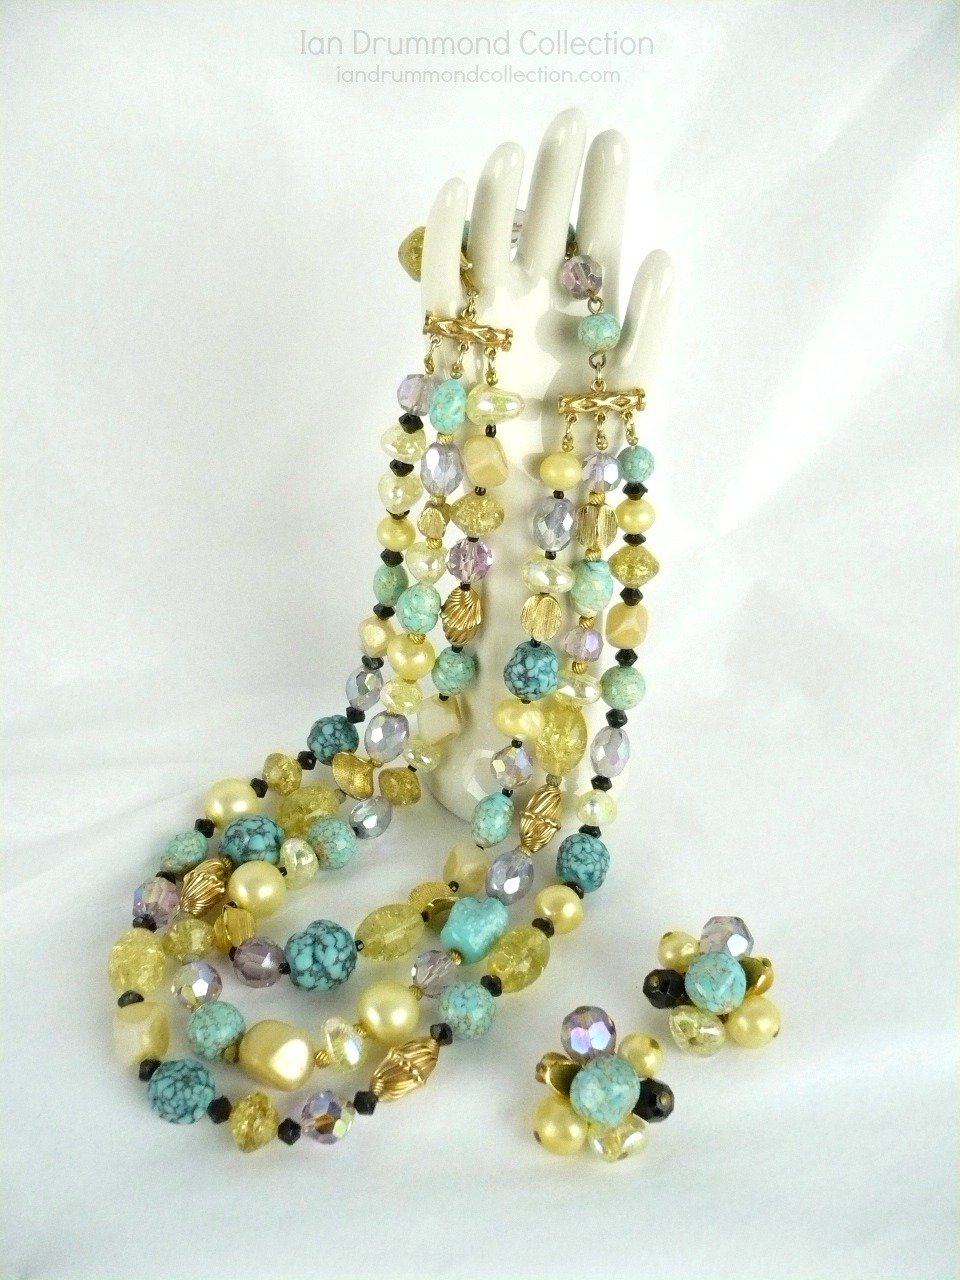 Ian Drummond Collection IDC Vintage Toronto Movie TV Wardrobe Rental jewellery 2 pc set Hattie Carnegie 3